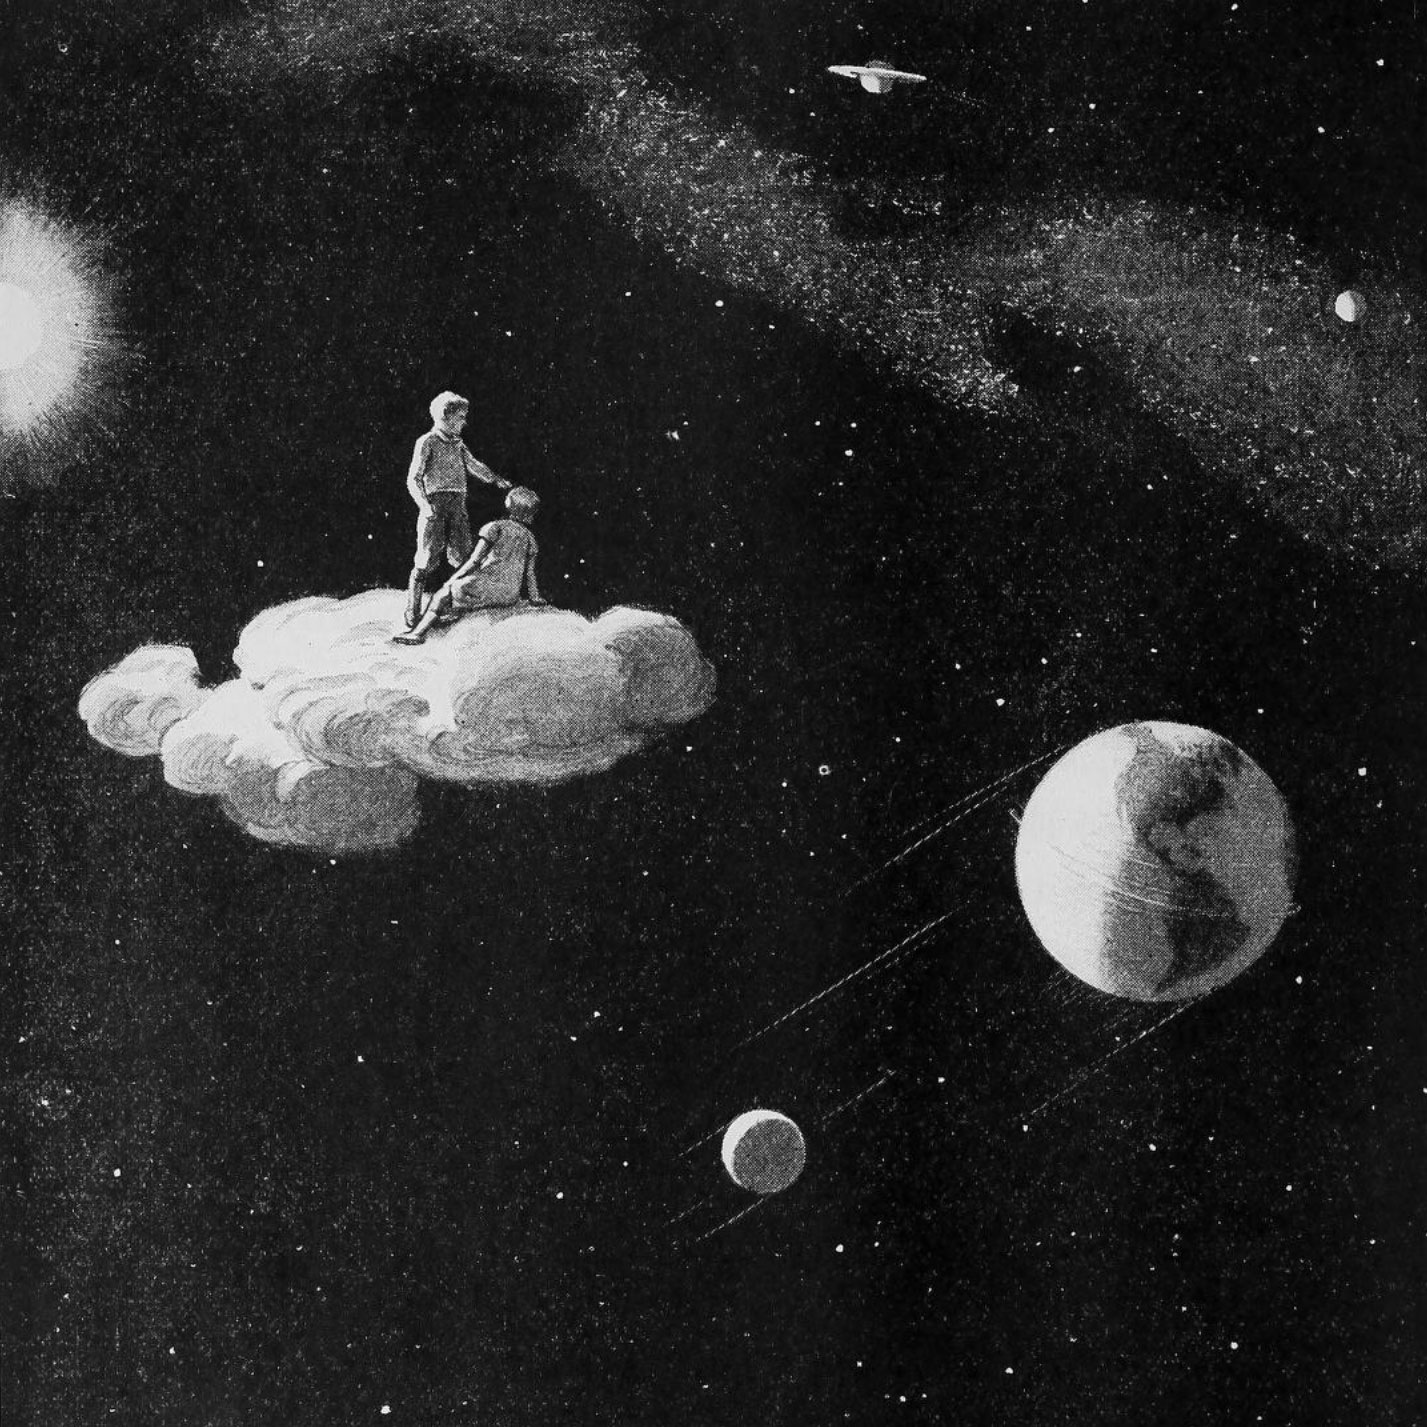 'Seeing the universe from a magic cloud' by Harold Sichel